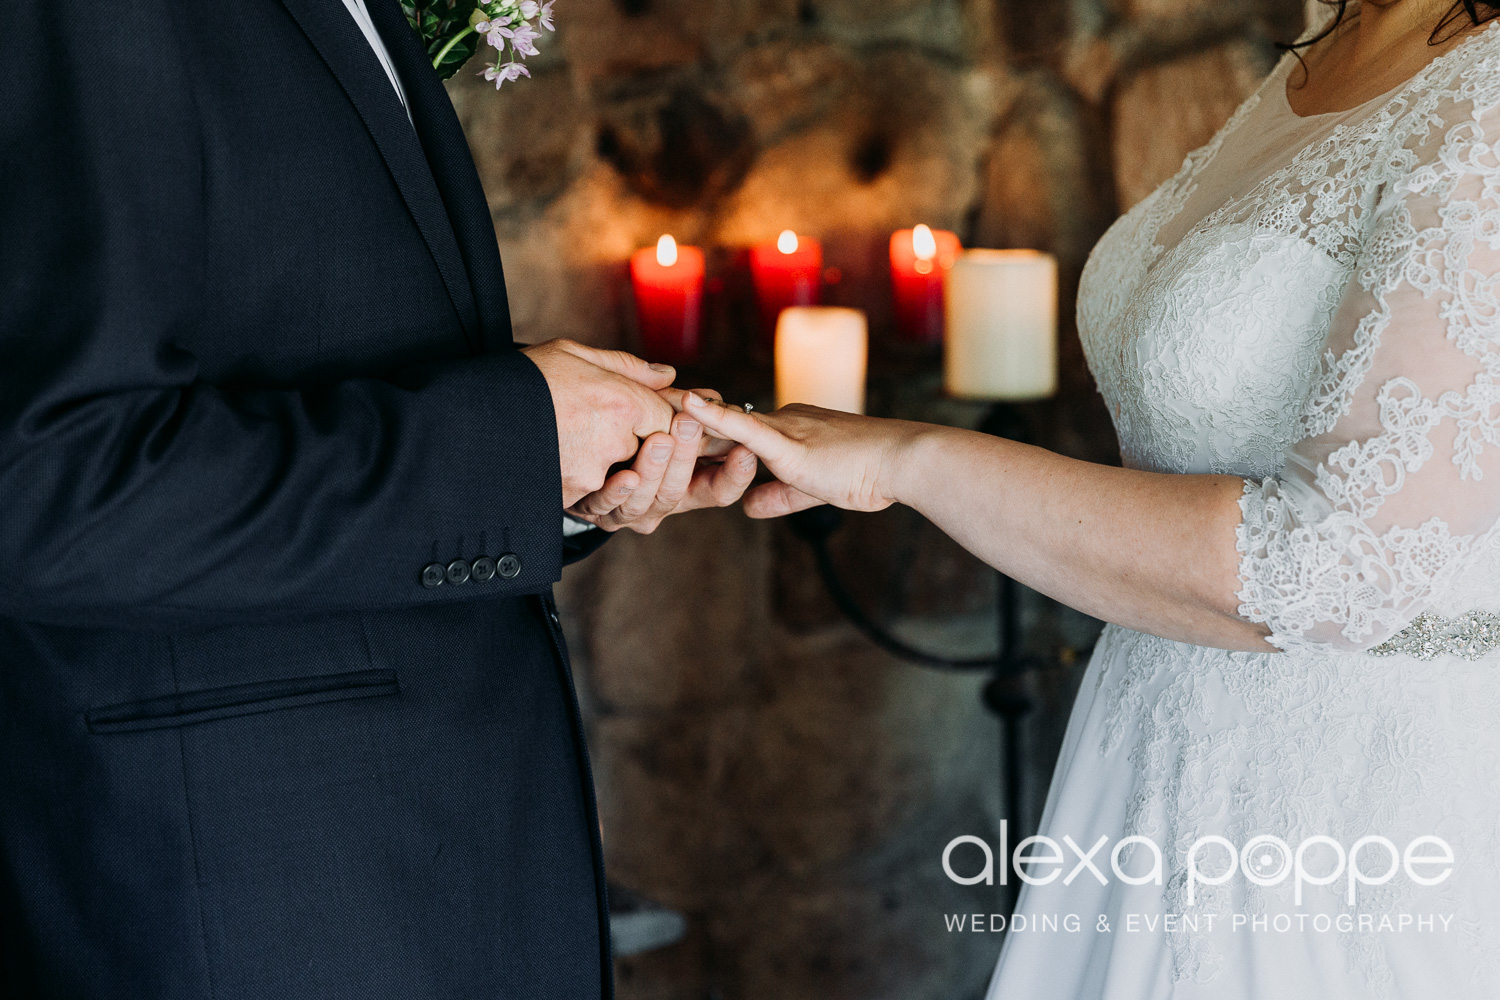 AJ_elopement_lowerbarns_7.jpg